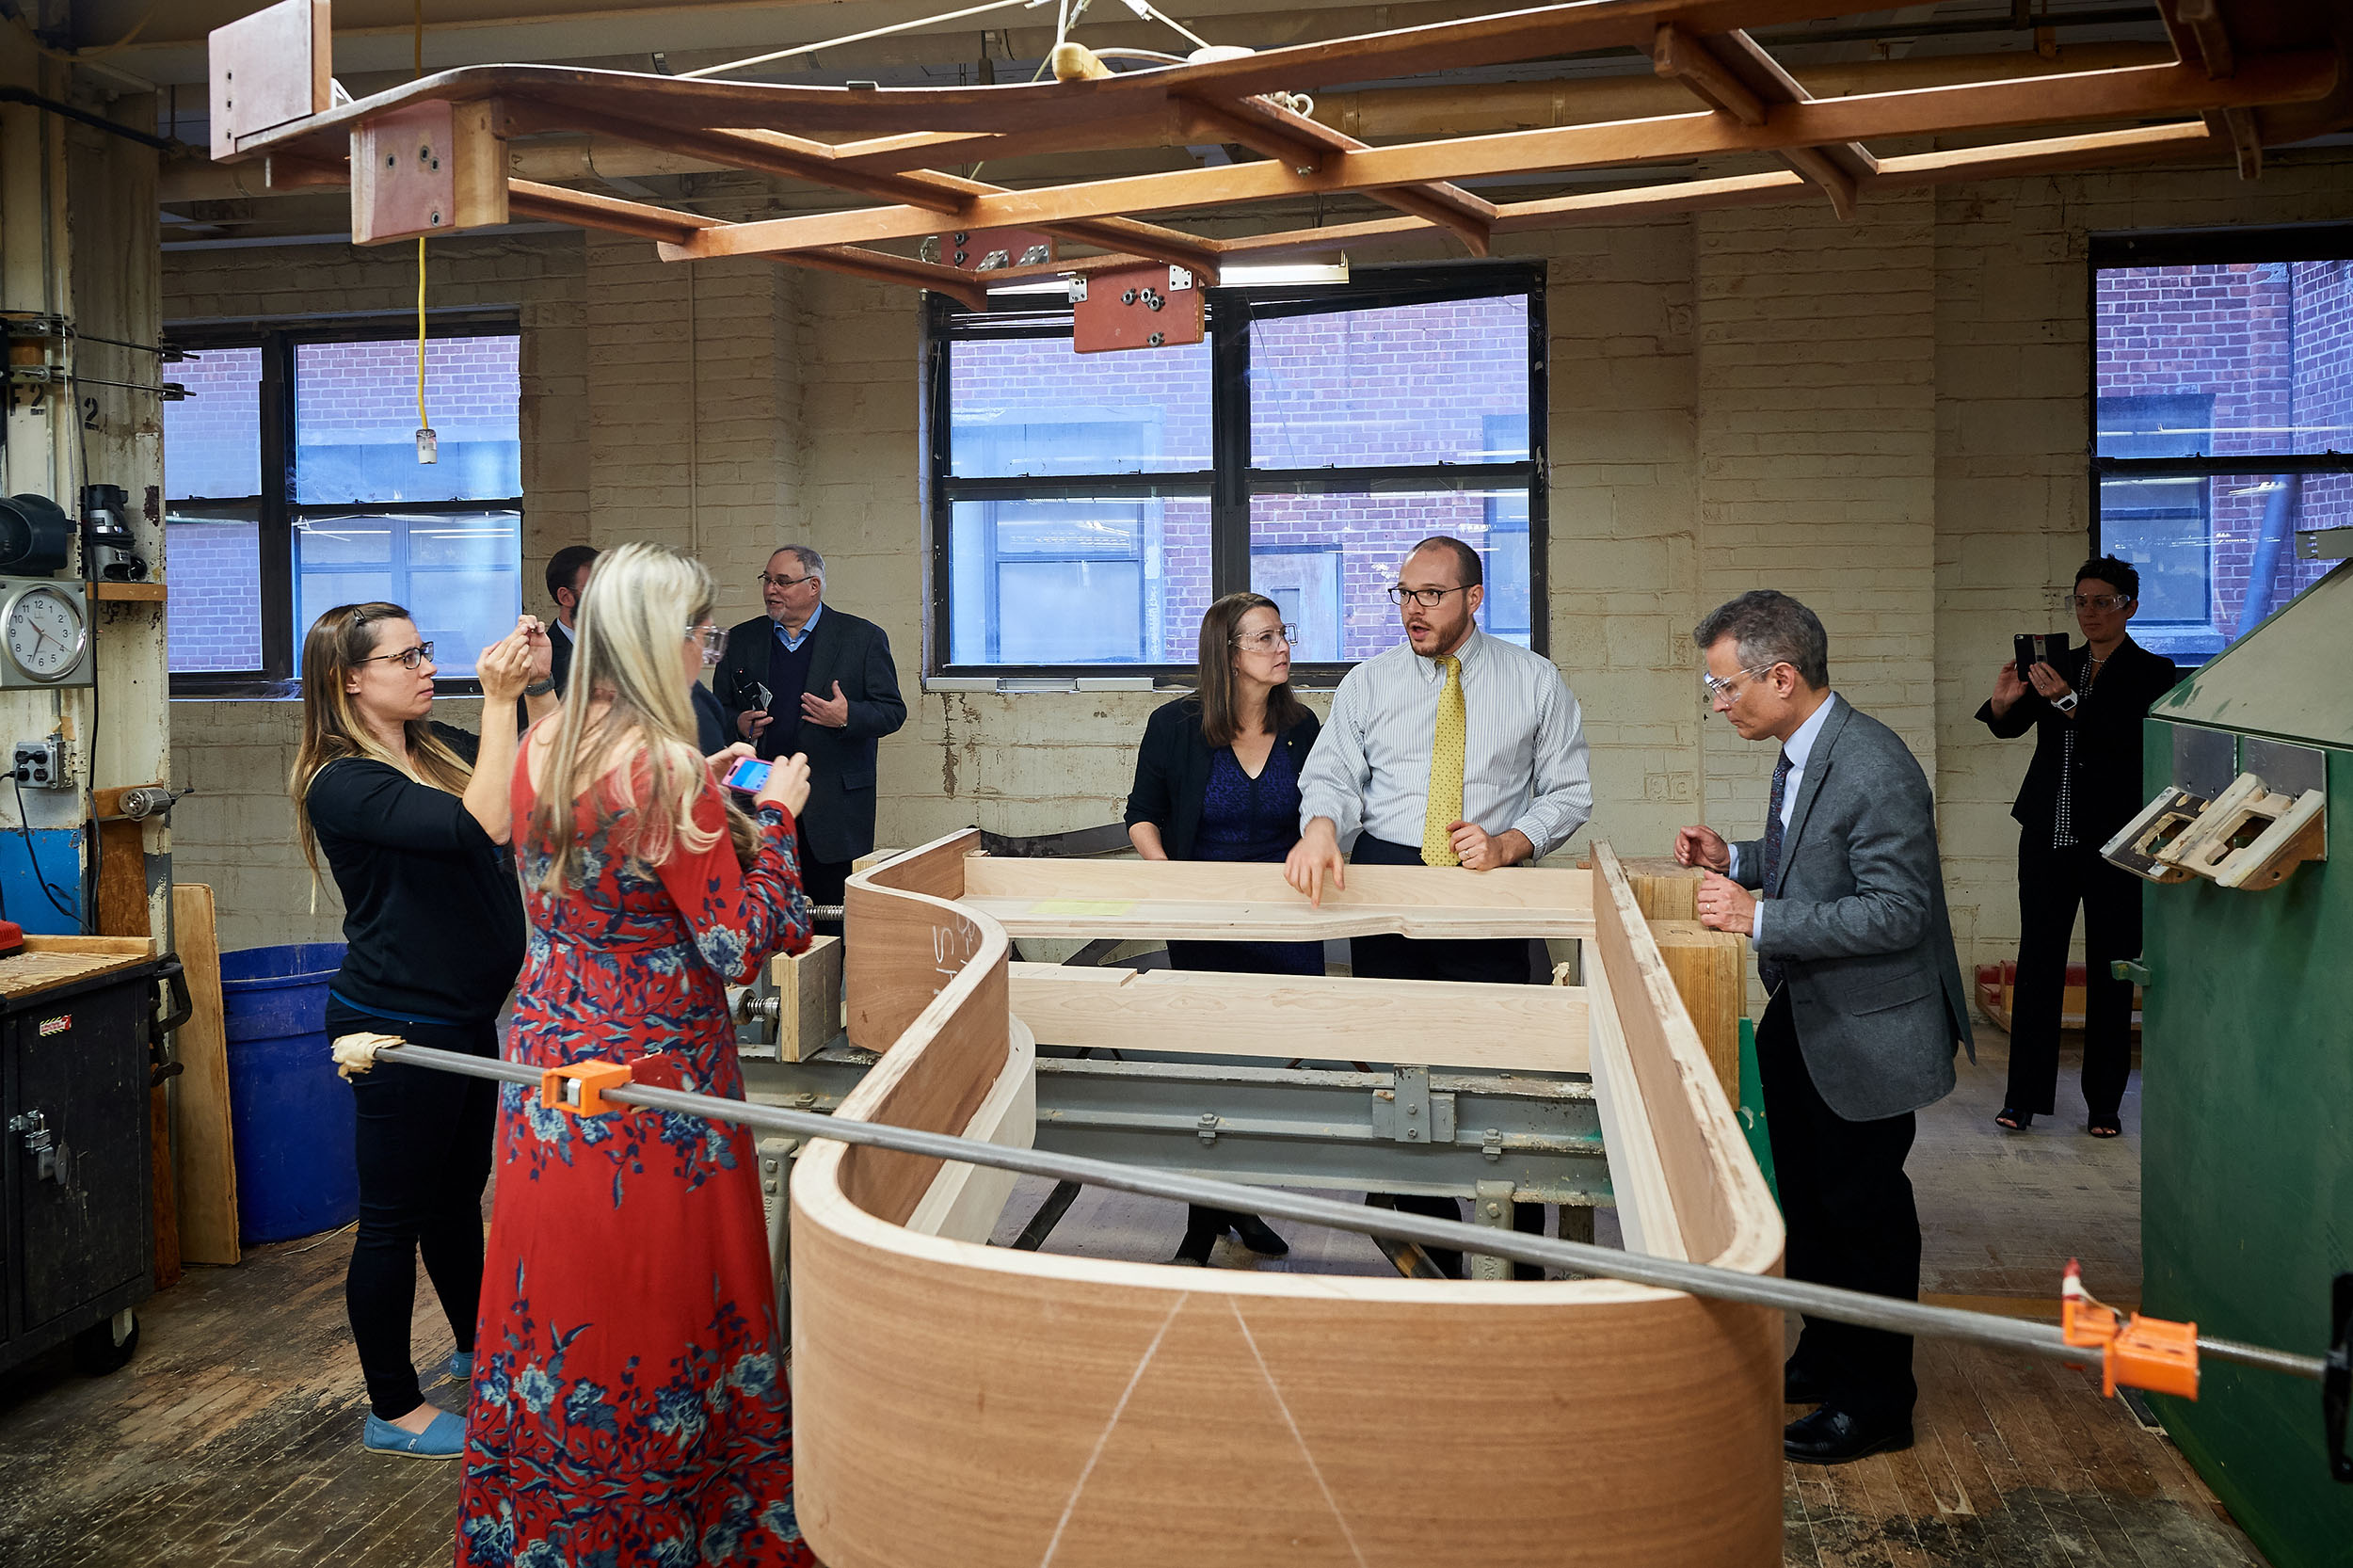 Logan Thompson, selection room manager, shows a tour group a Steinway & Sons piano under construction